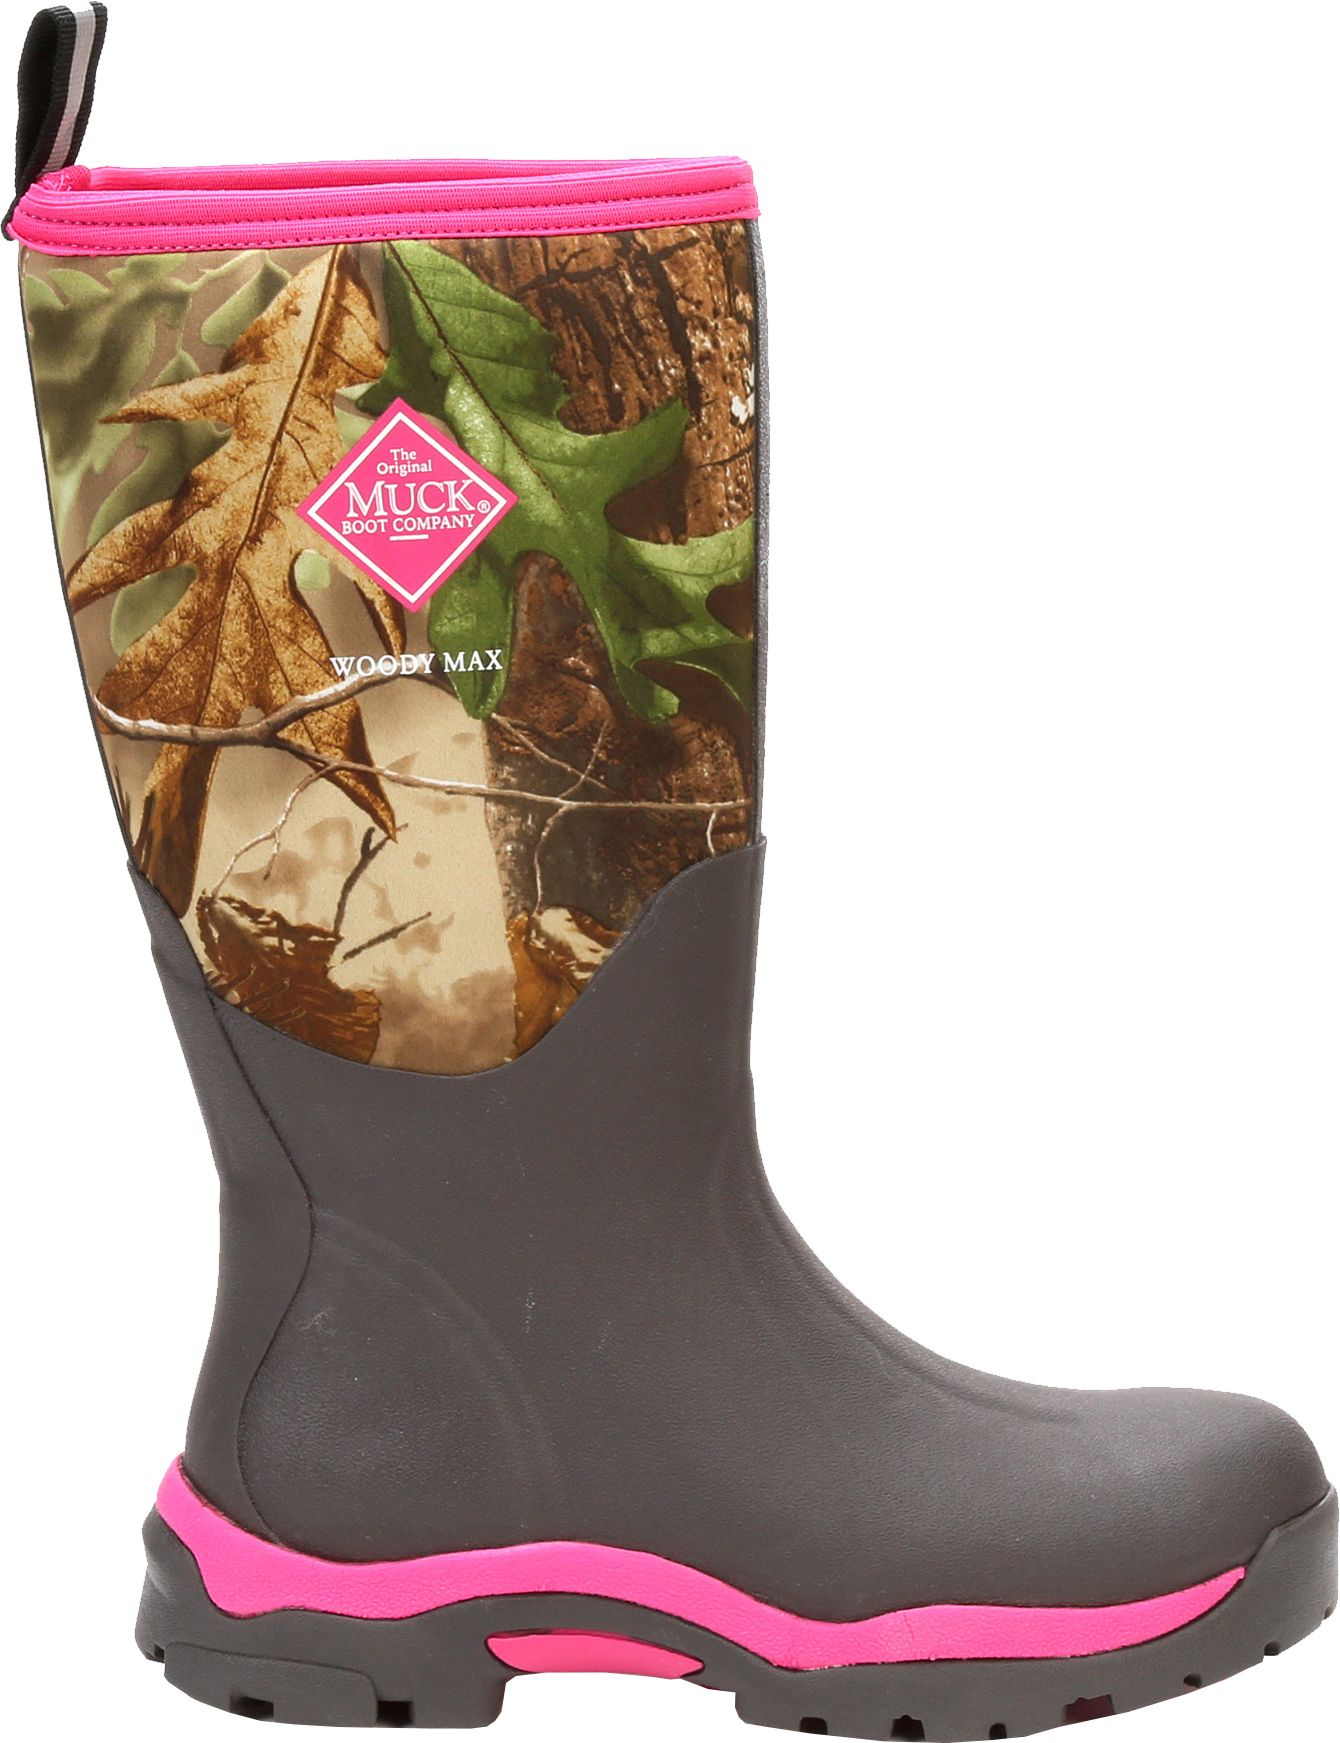 Muck Boot Women's Woody Max Rubber Hunting Boots | DICK'S Sporting ...